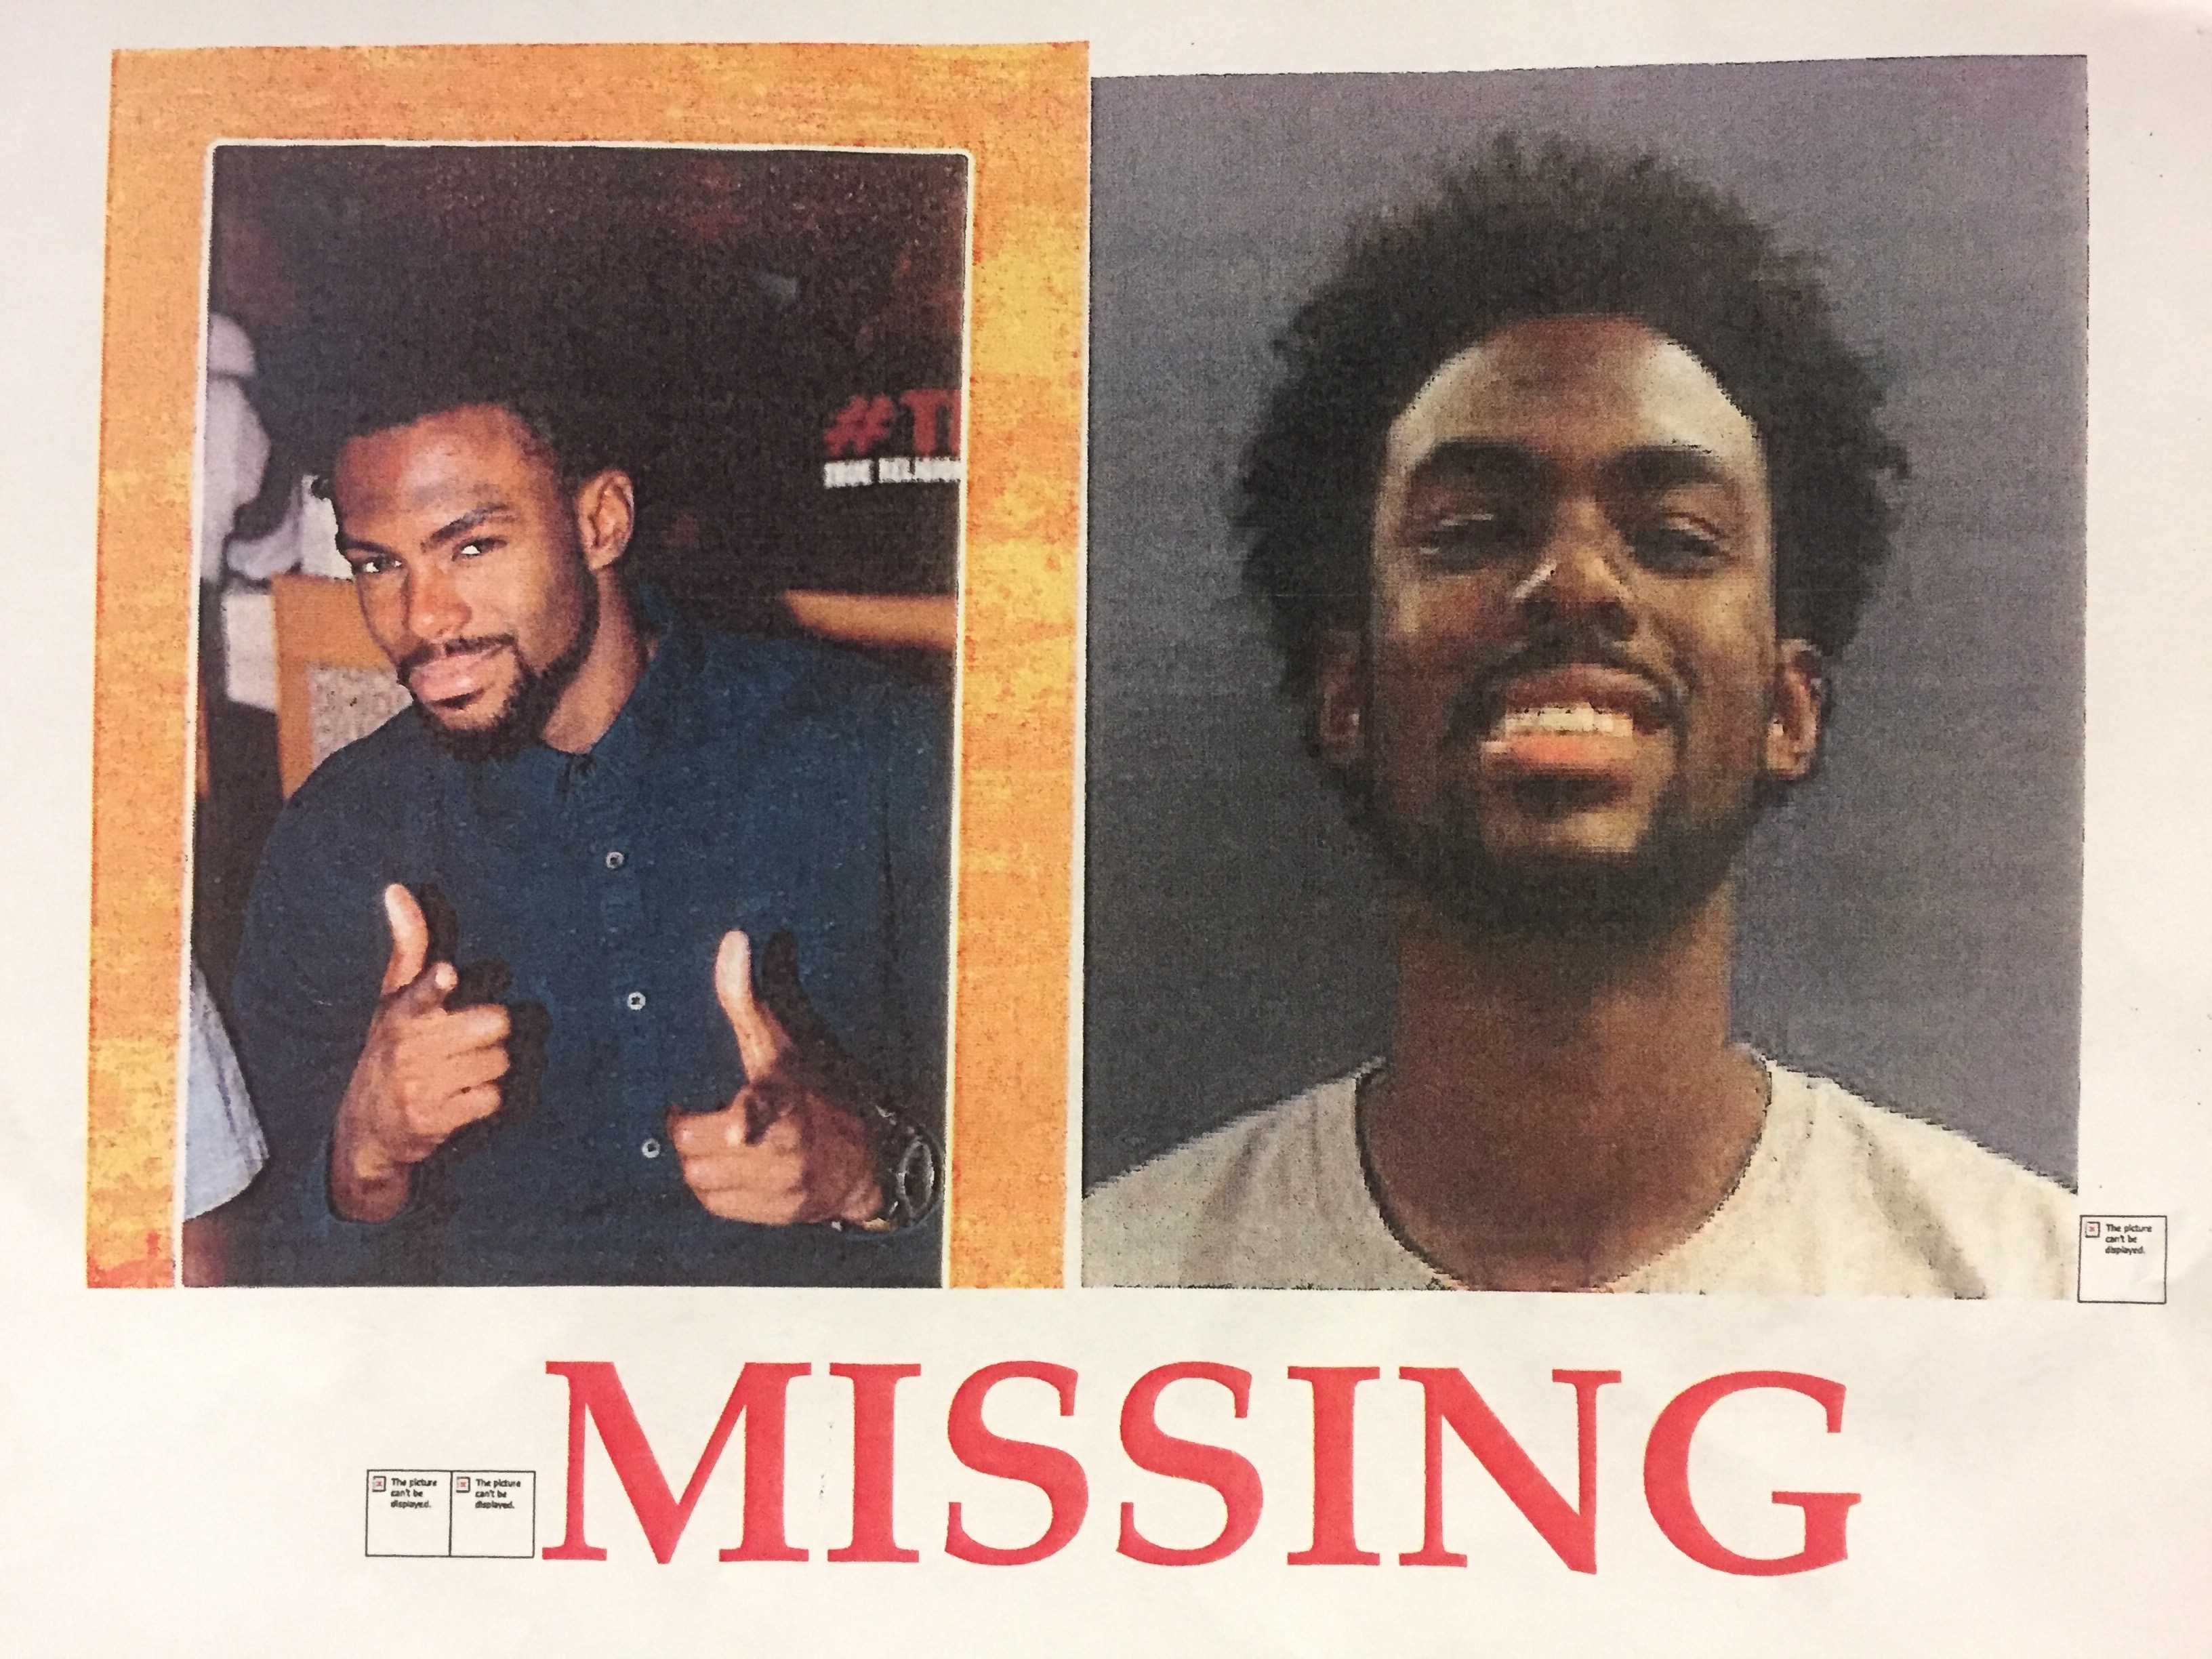 EXCLUSIVE: Delaney talks missing students, and what comes next as search continues